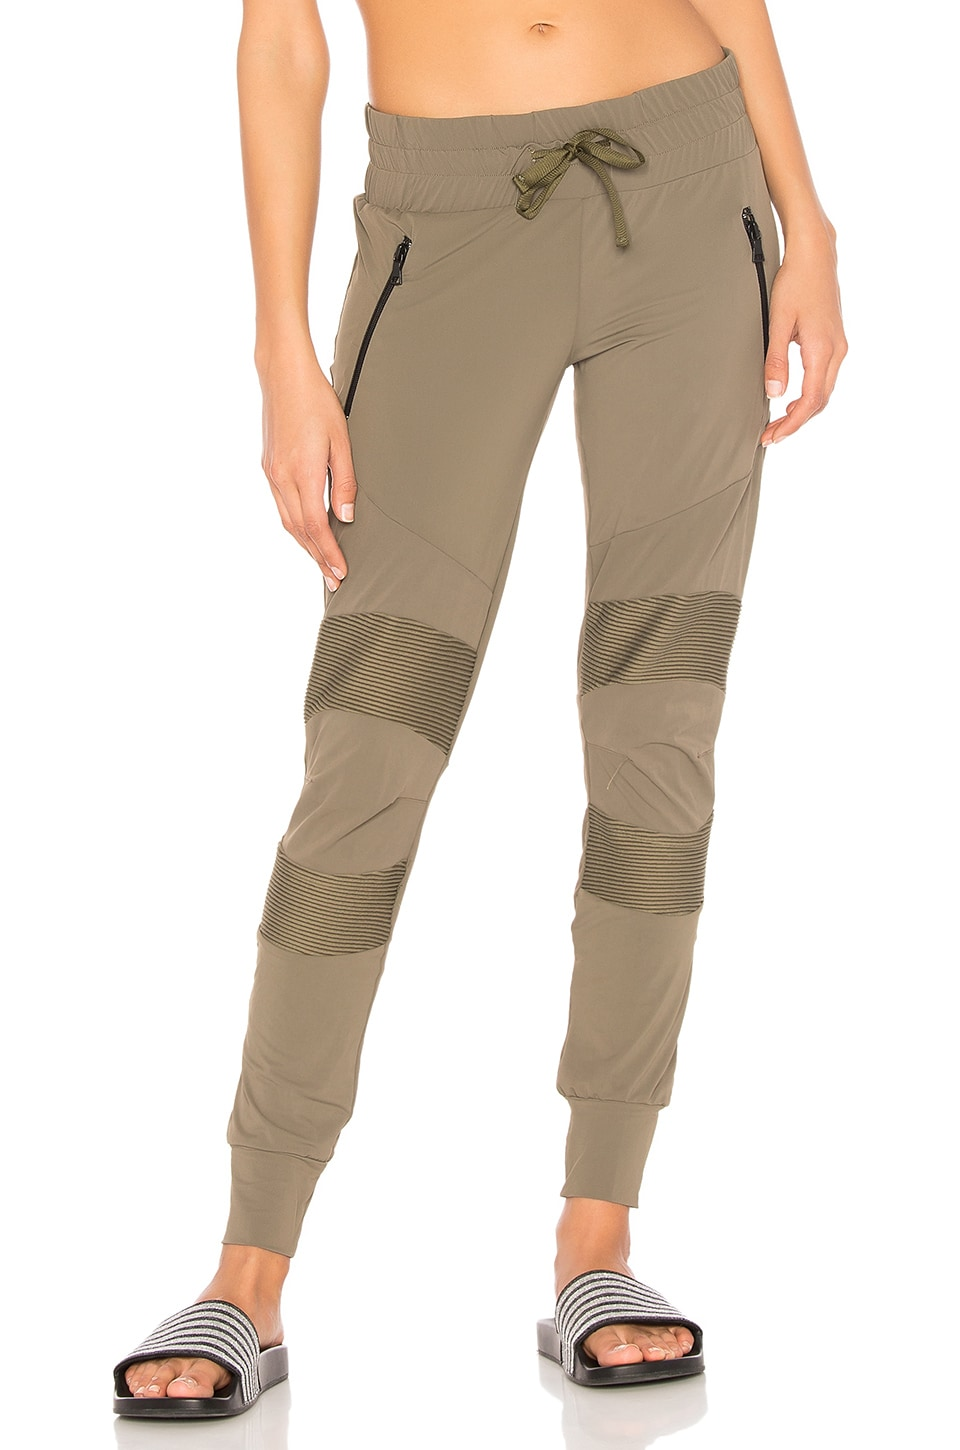 BELOFORTE Spring Track Pant in Combat